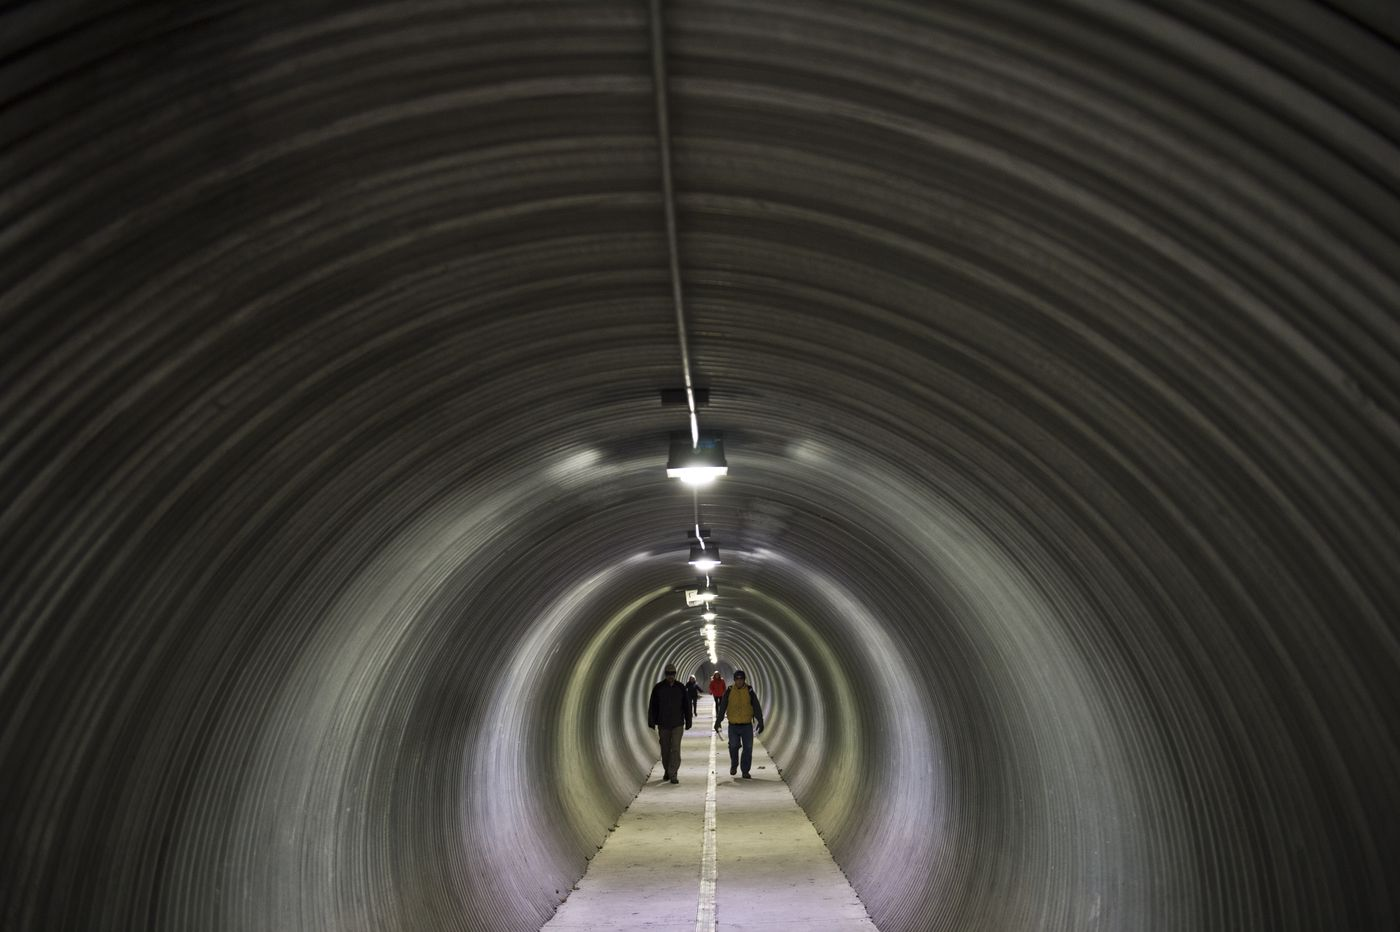 Whittier residents walk through a pedestrian tunnel under the rail yard on Oct. 10. The tunnel connects the harbor to the city center. (Marc Lester / Alaska Dispatch News)